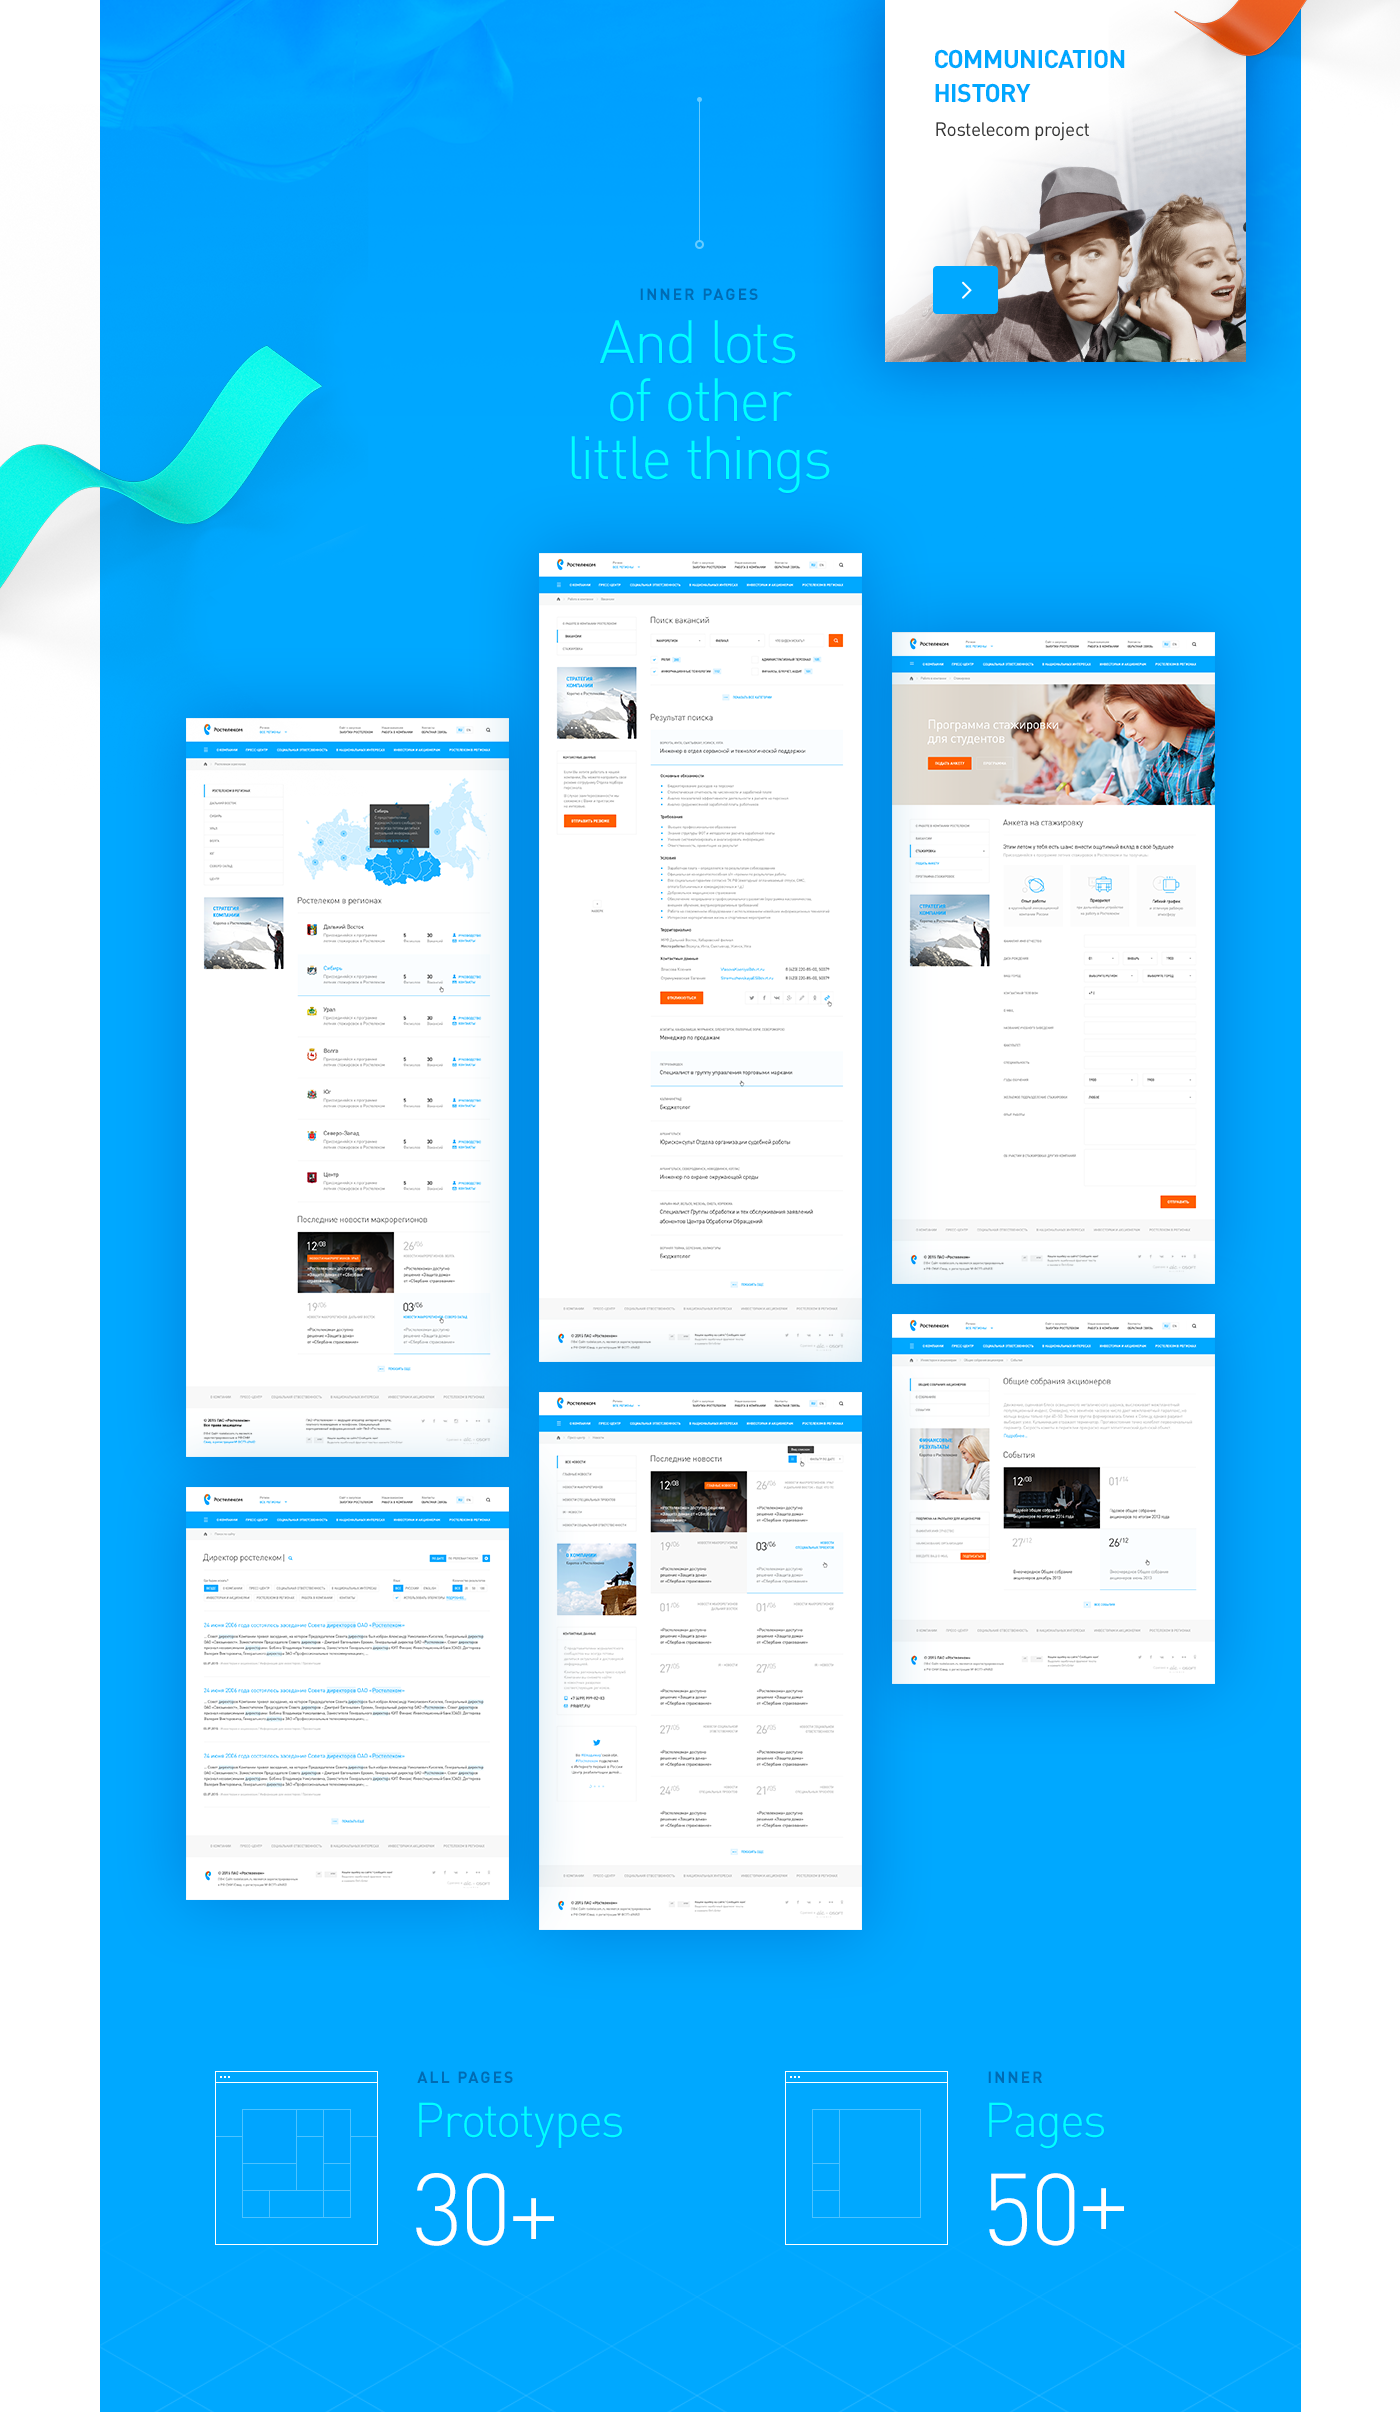 23rostelecom Rethink The Concept Of Rostelecom Corporate Website Make It More Visually Appealing And User Frie Web Design Interface Design Interactive Design